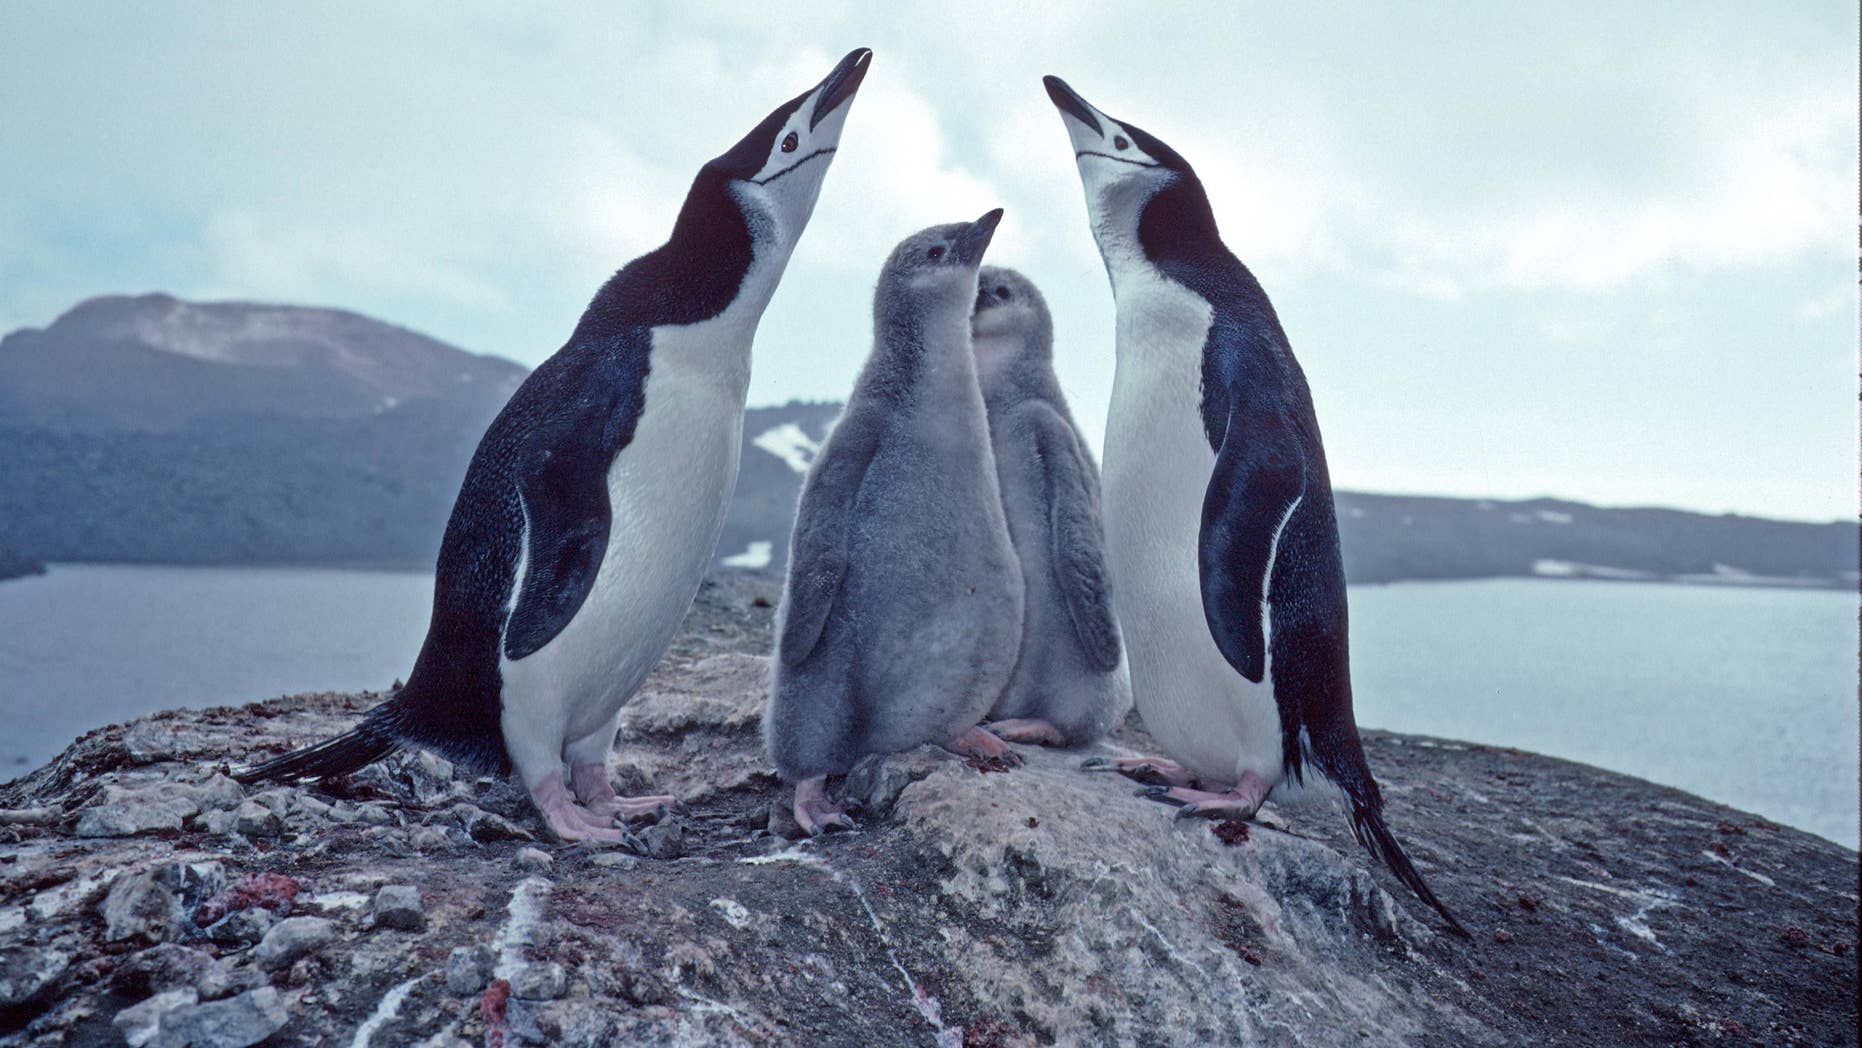 Volcanic ash threatens an enormous colony of chinstrap penguins